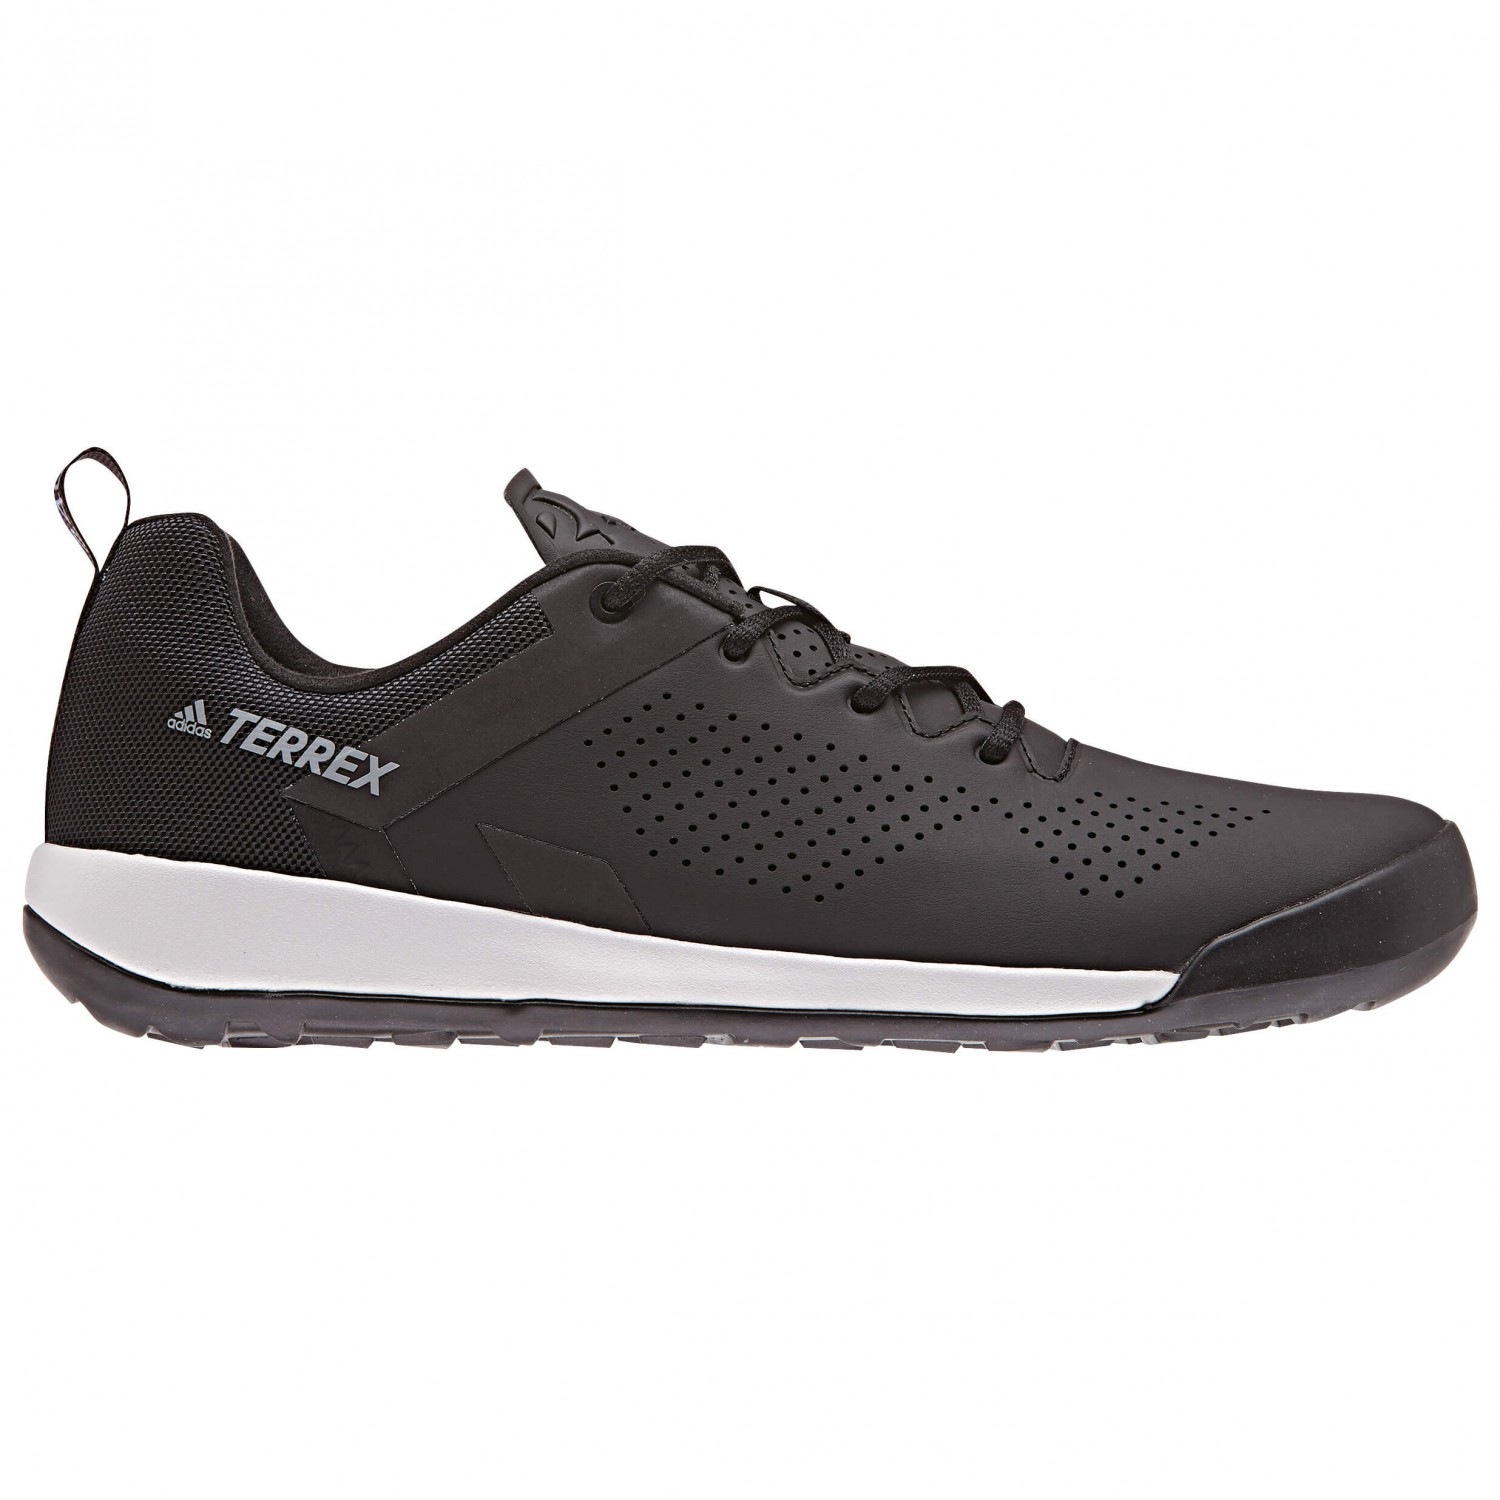 adidas terrex trail cross curb shoes